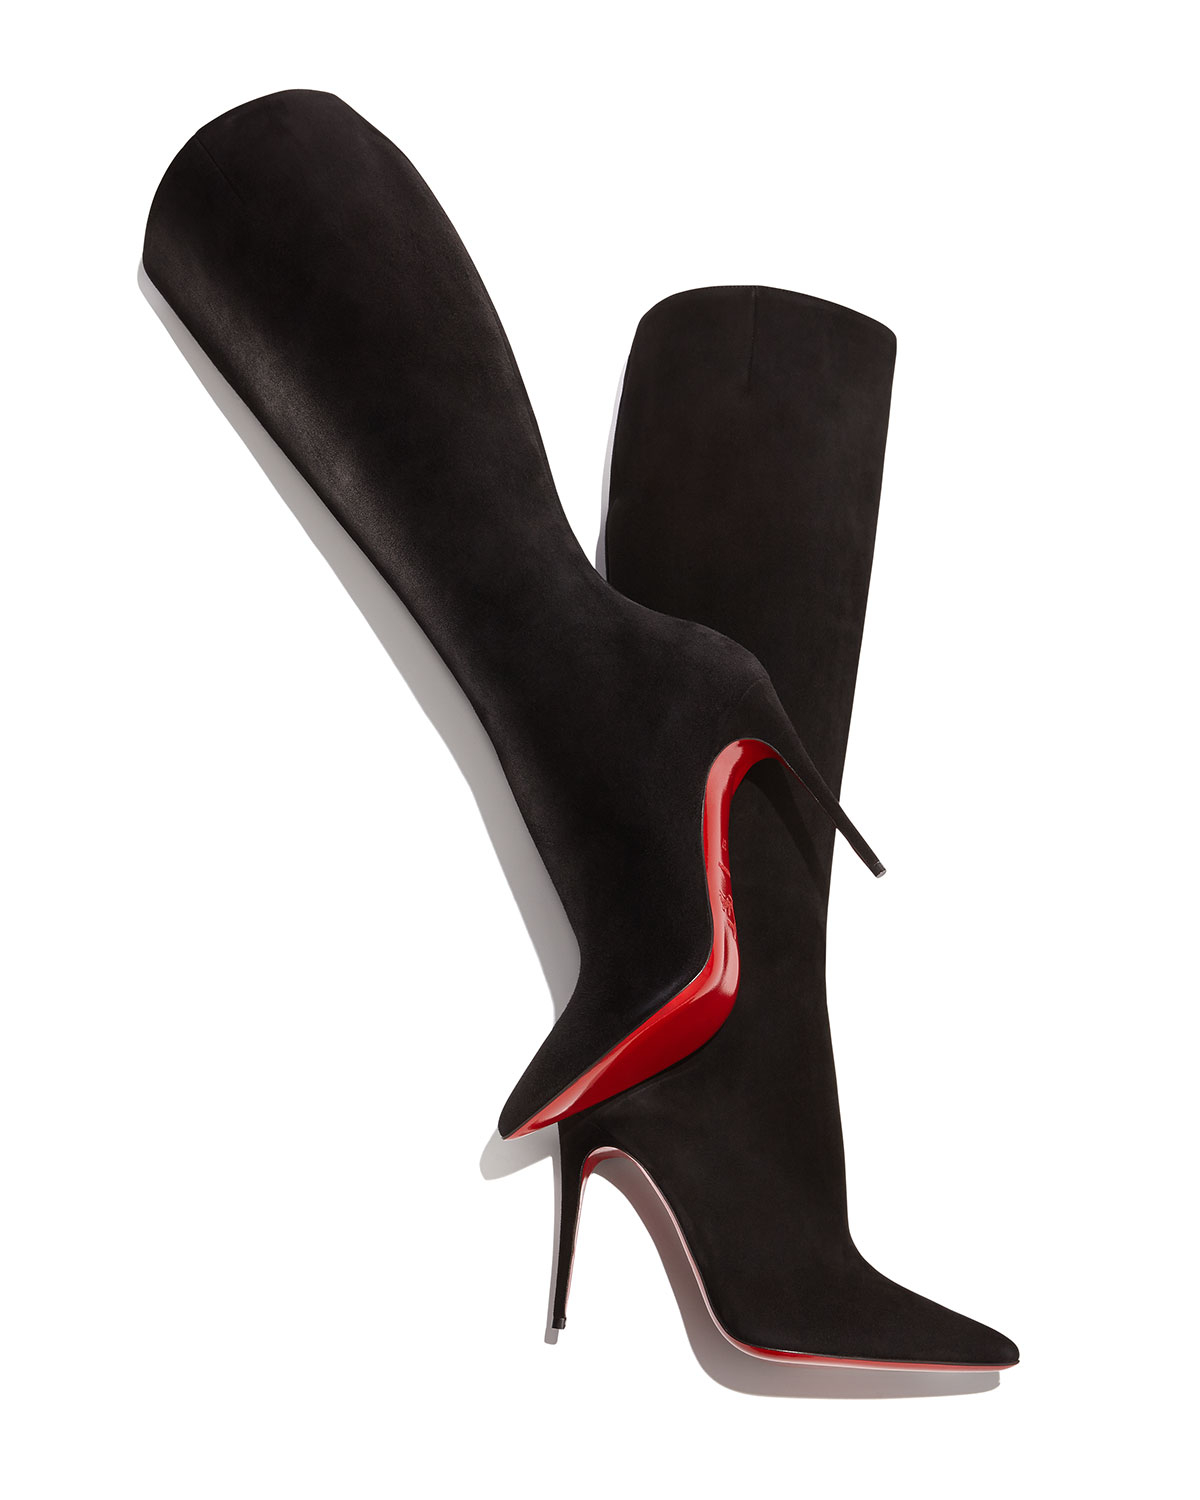 Artesur ? christian louboutin pointed-toe boots Black suede